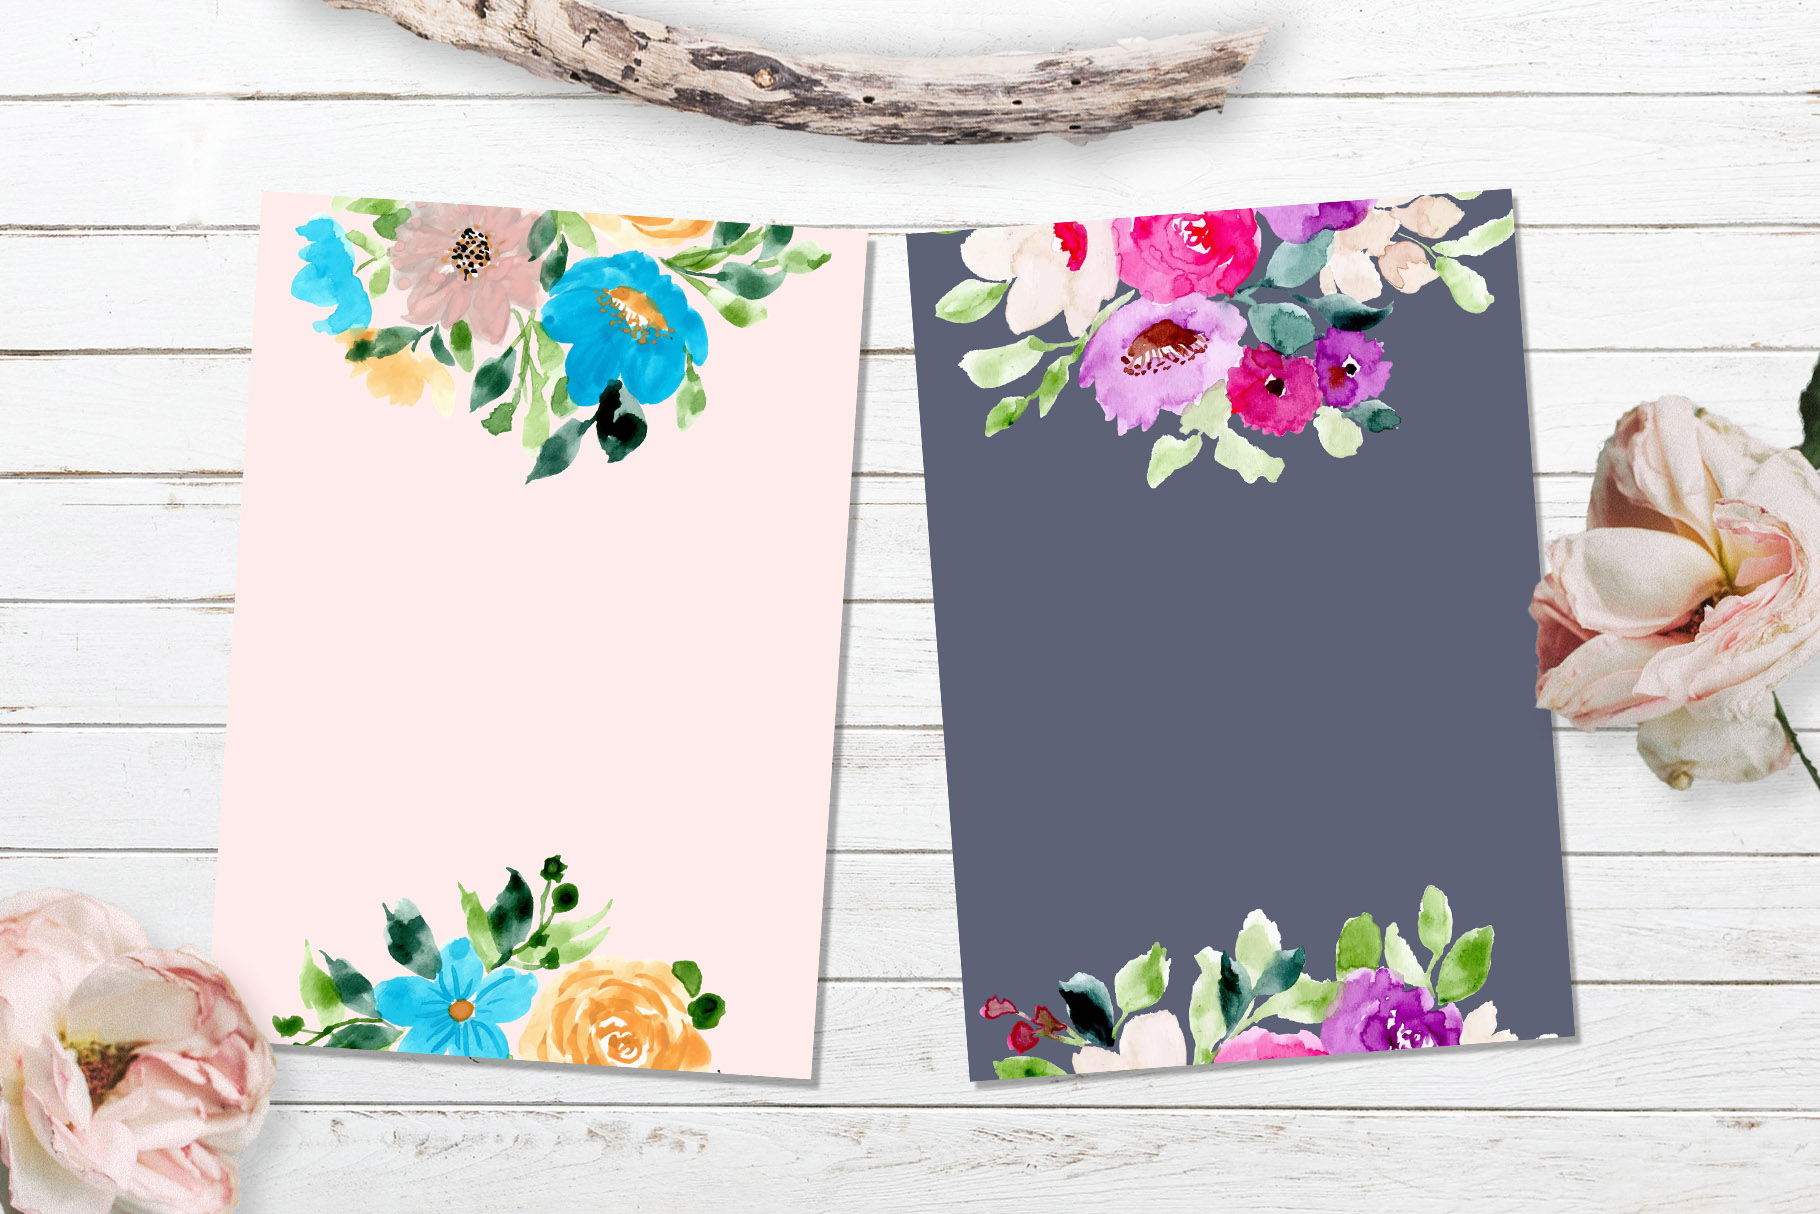 Floral Invitation Backgrounds Vol.3 example image 2